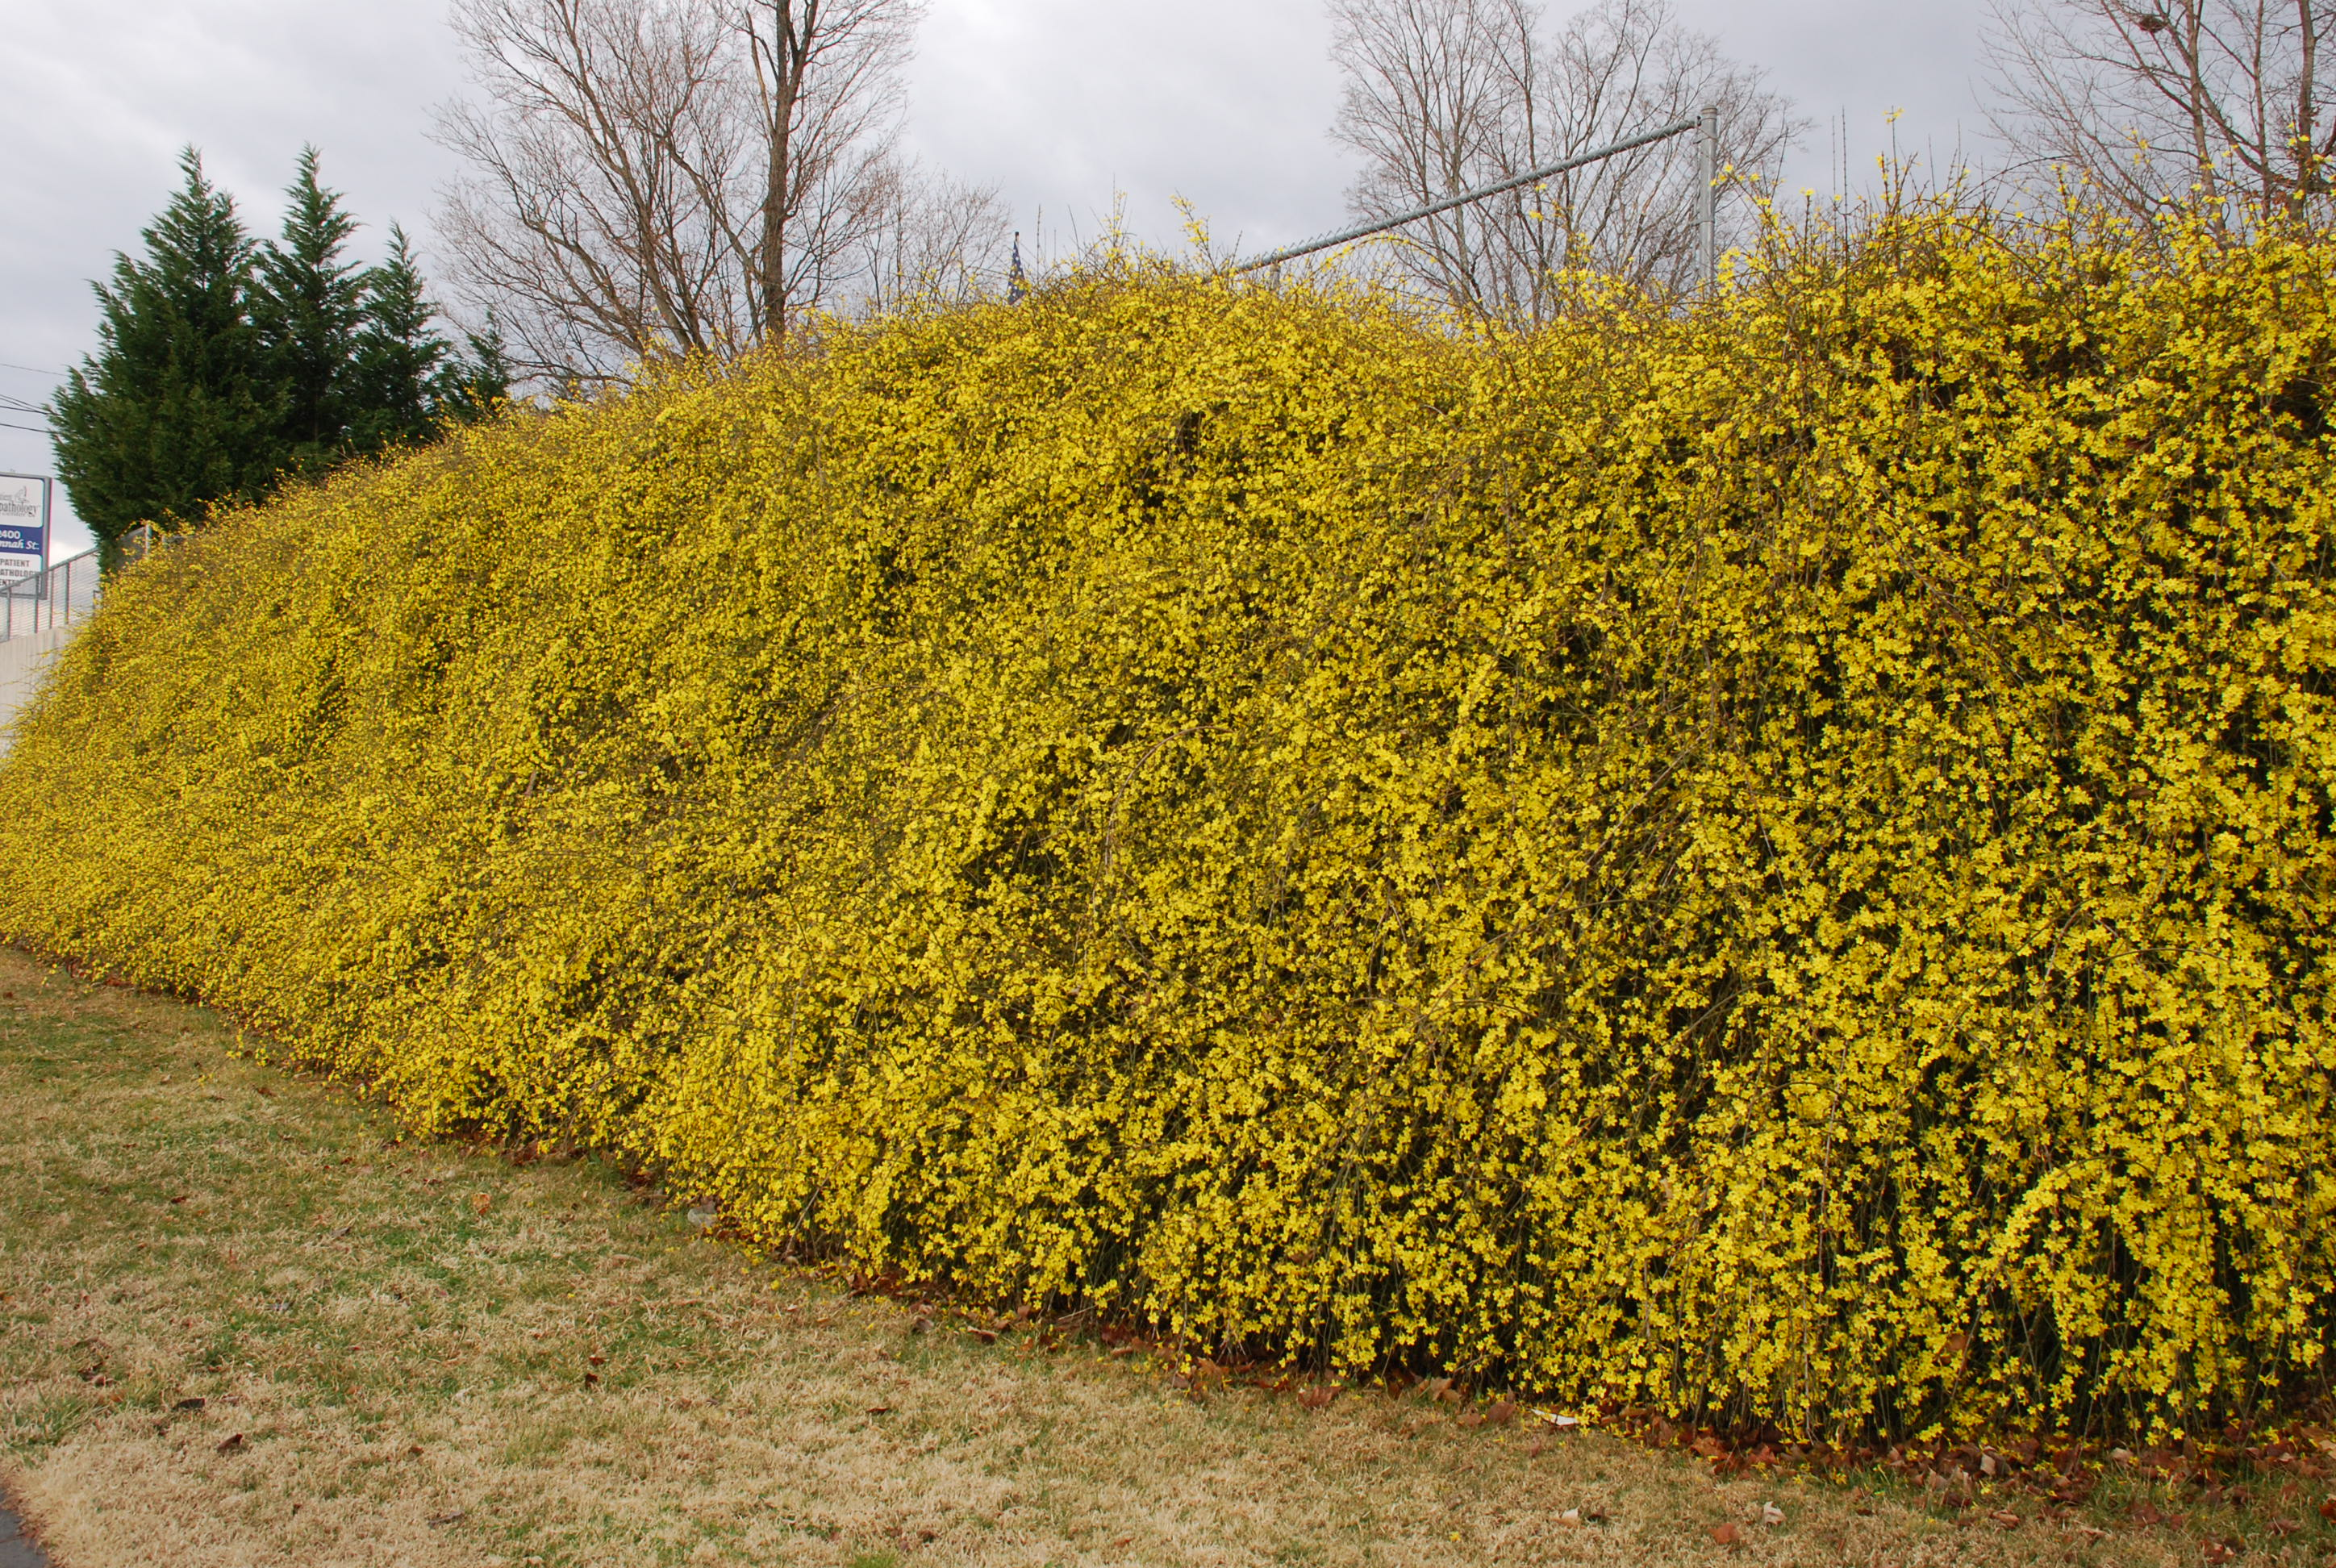 winter jasmine rising what grows there hugh conlon horticulturalist professor lecturer. Black Bedroom Furniture Sets. Home Design Ideas